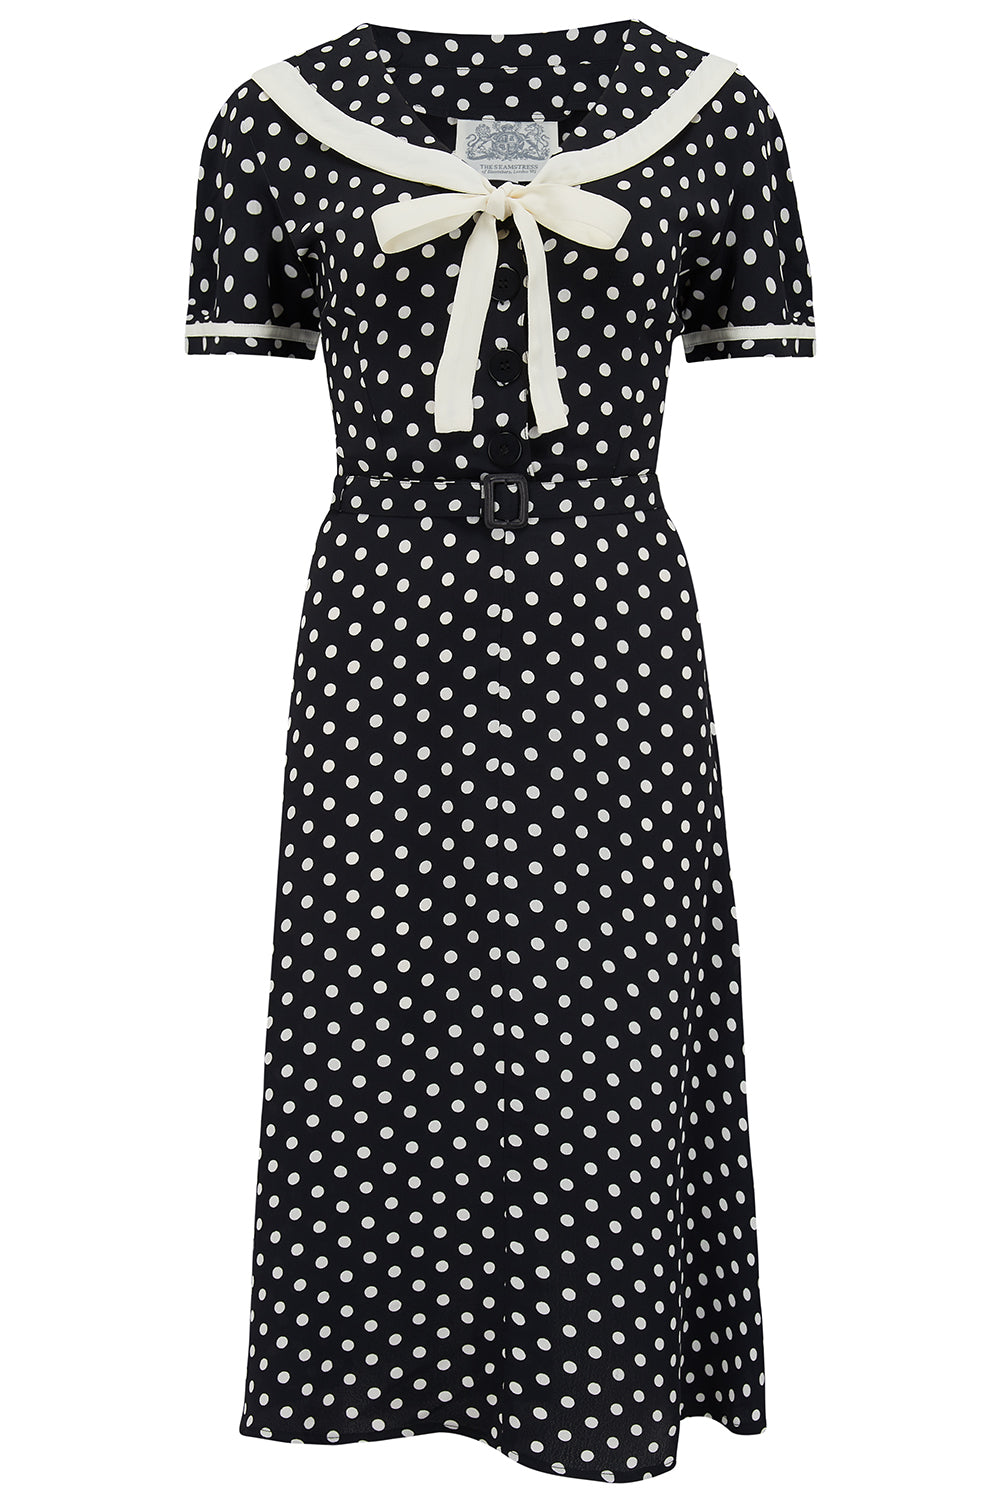 1940s Dresses | 40s Dress, Swing Dress, Tea Dresses Patti Dress In 1940s Black With White Polka dot And Contrast Collar Authentic true vintage style £79.00 AT vintagedancer.com